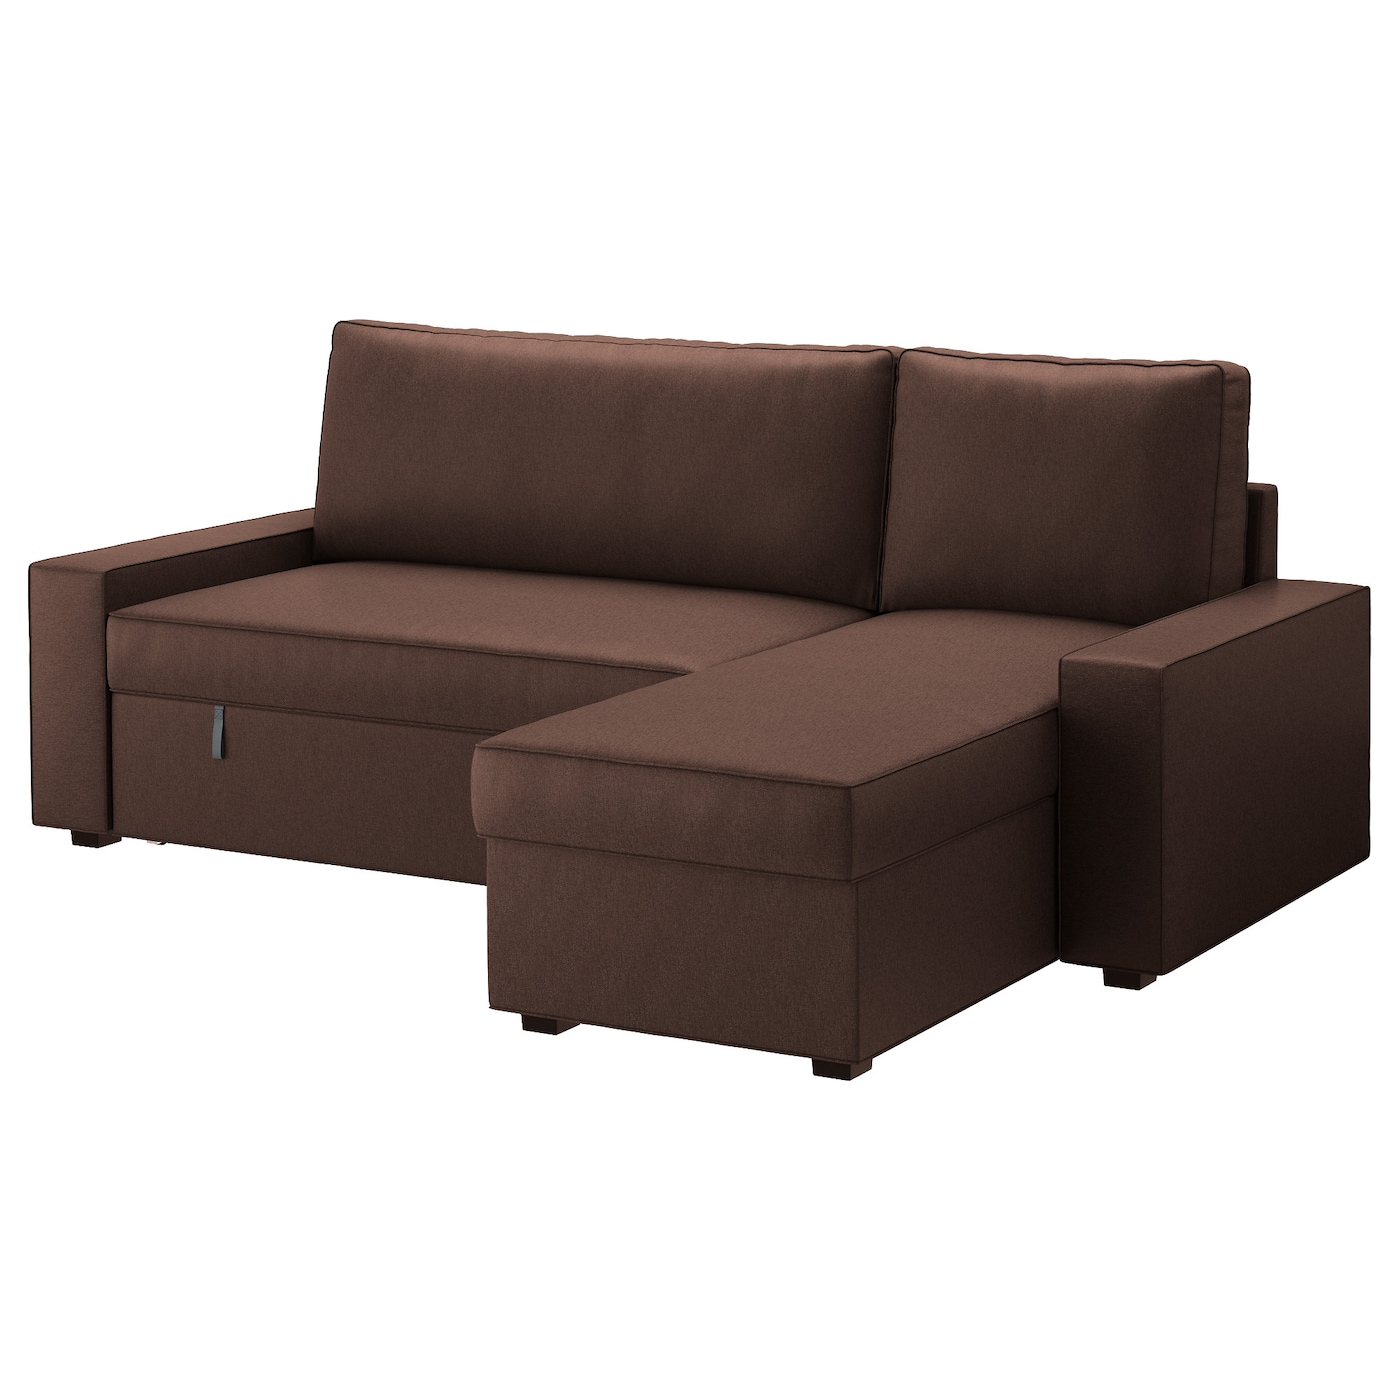 Vilasund sofa bed with chaise longue borred dark brown ikea for 90 cm sofa bed